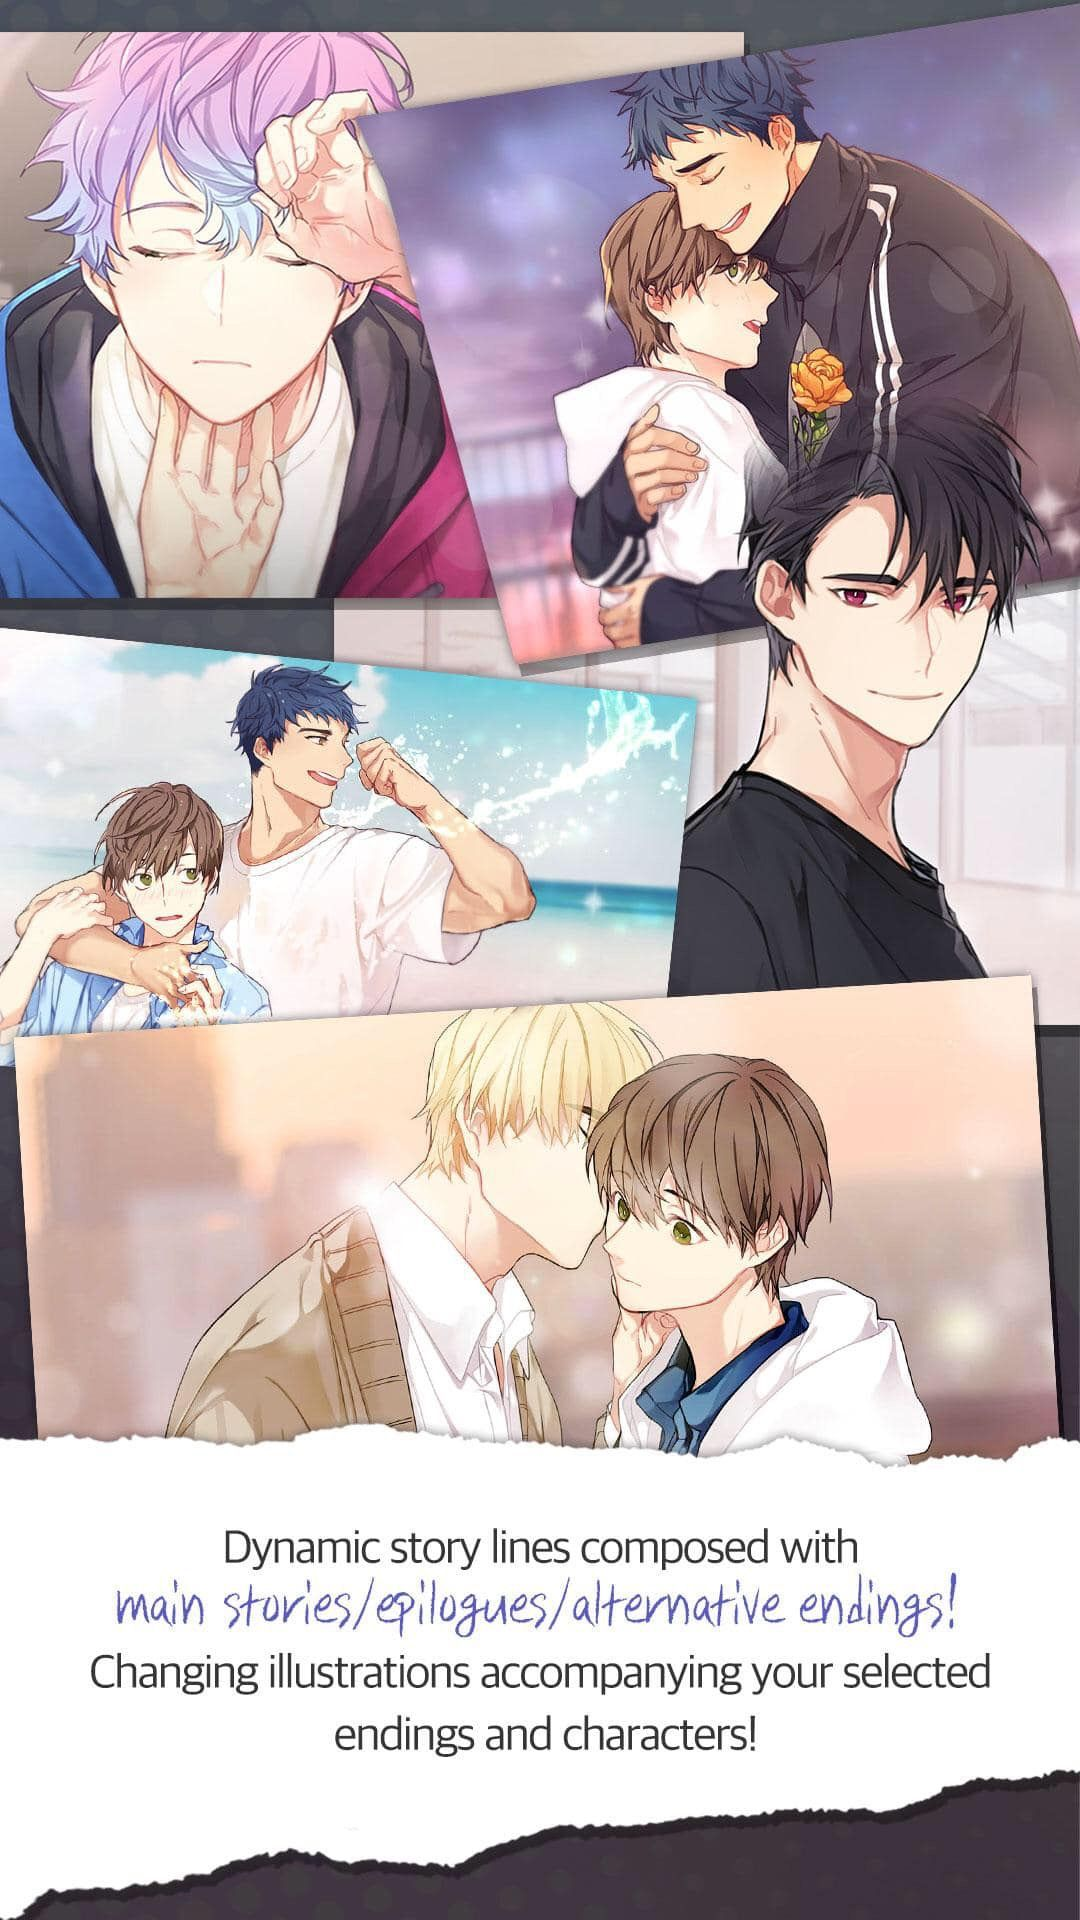 English Otome Game App With Korean Voice My Secret Idol Boy Friend Kpop Idol Love Story A Practice Journal Of A Girl In Disguise My Secret Idol Bf By B